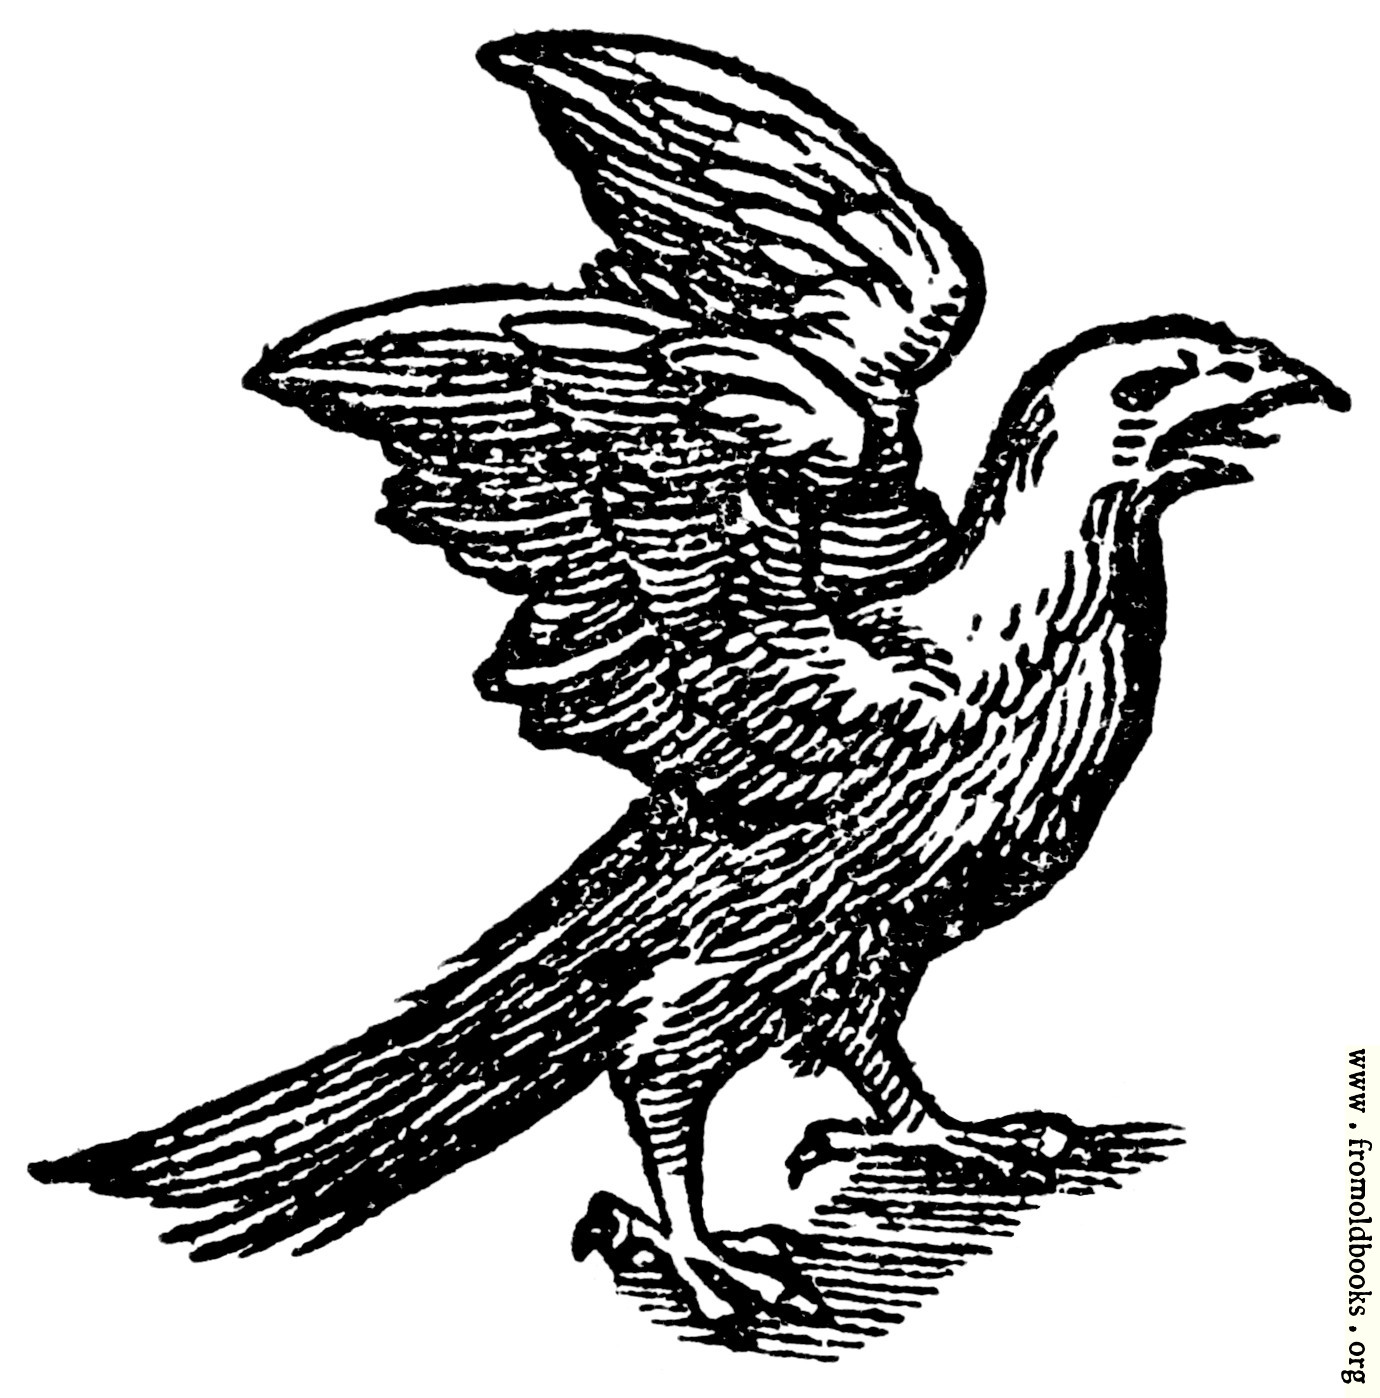 [Picture: 68b.—Printer's Mark Detail: feathered eagle]